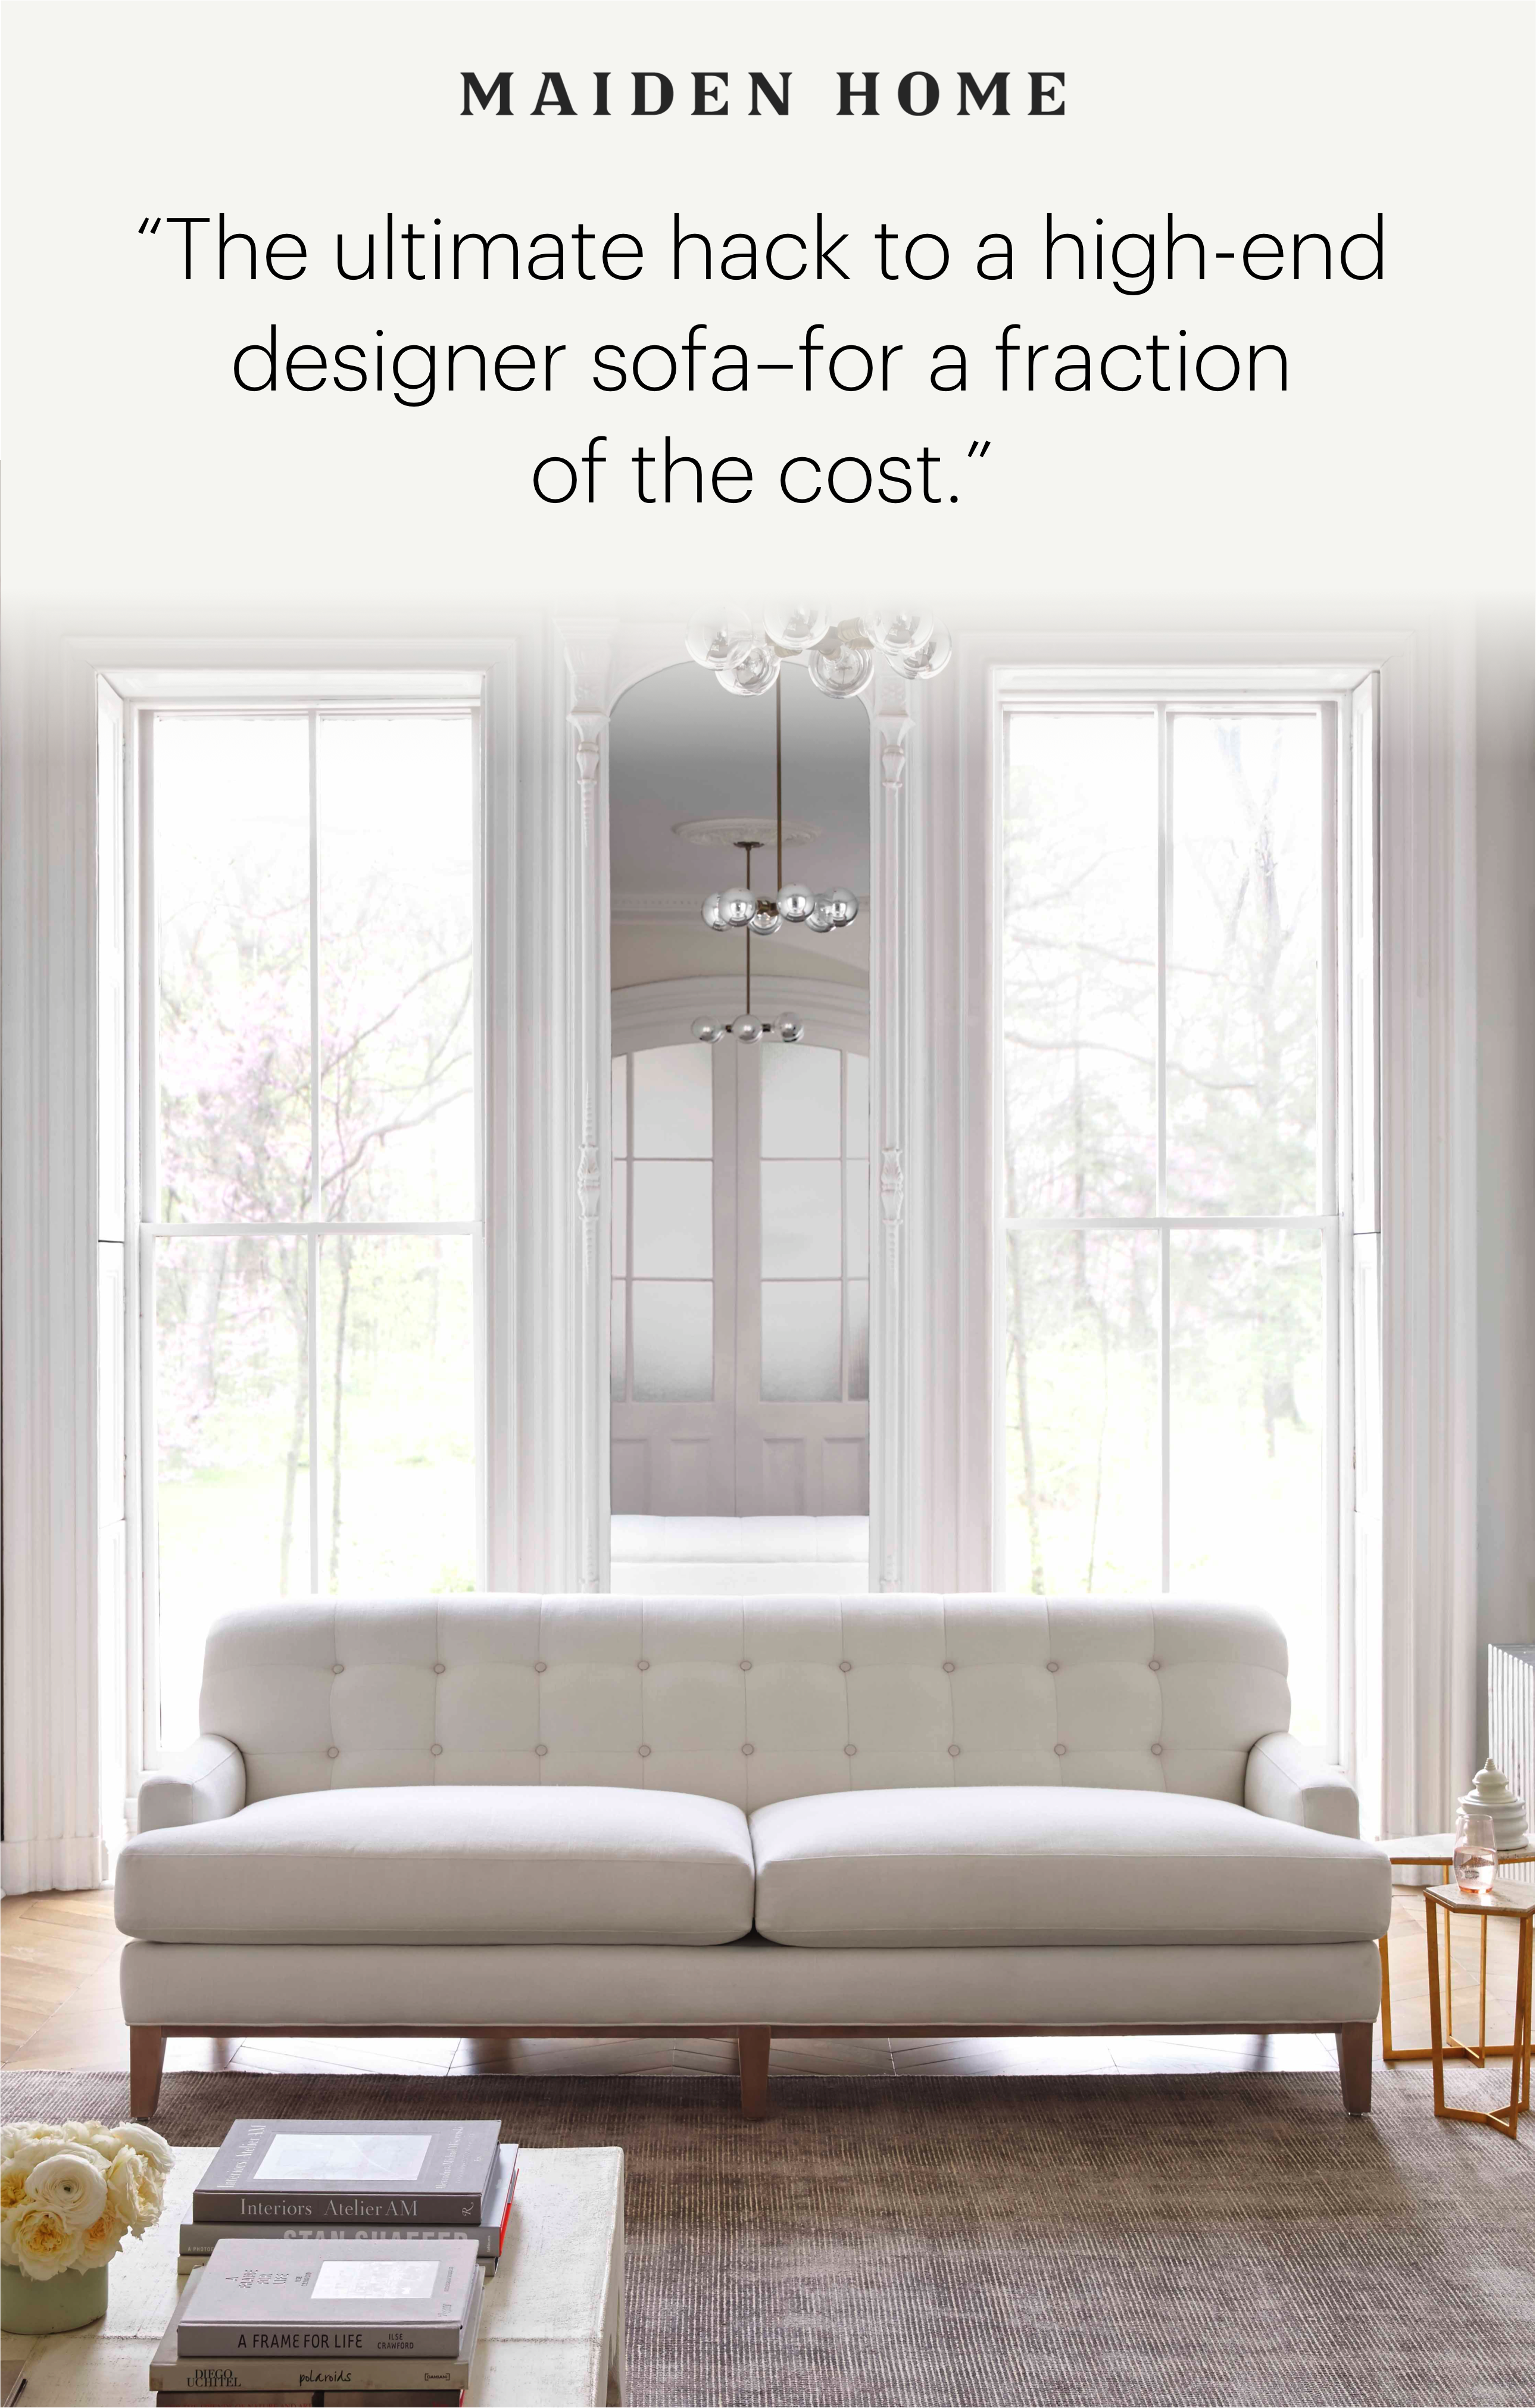 Maiden Home Offers Custom American Made Furniture At A Fraction Of The Traditional Price